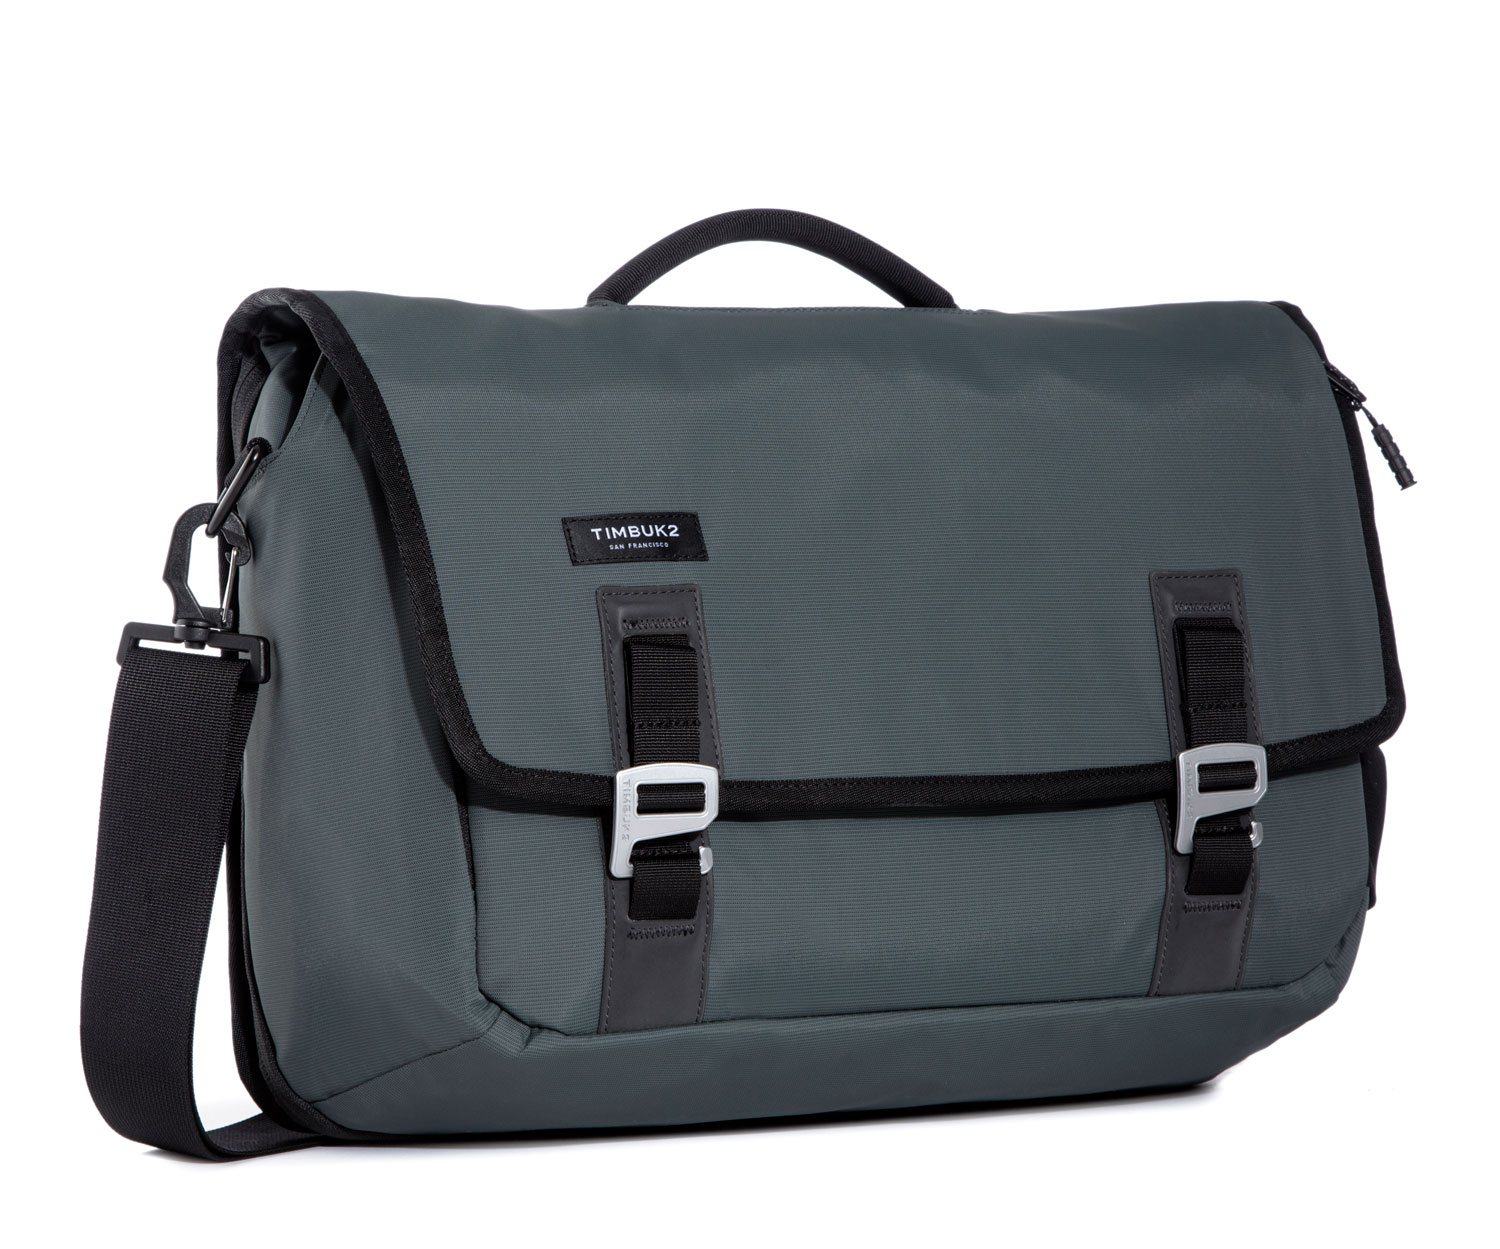 Mala Leather are UK Stockists of Leather Handbags, Shoulder Bags, Work Bags and Purses at amazing prices to Wholesale and Retail customers. Mala Leather also offer a full range of Mens Leather Accessories like Wallets, Laptop Bags, Messenger Bags and Briefcases.